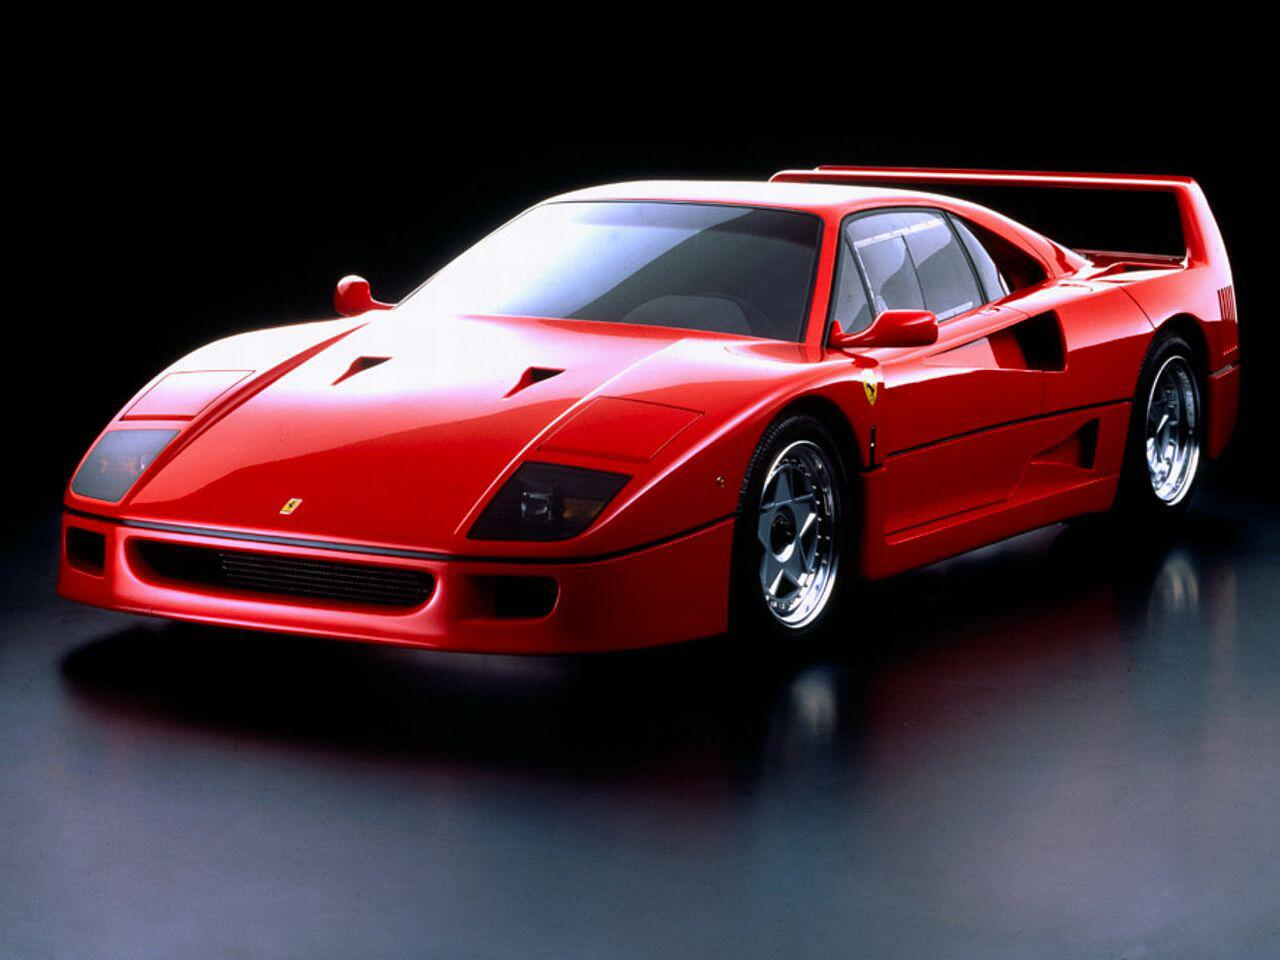 rekordpreis ferrari f40 steigt in den club der million re auf web de. Black Bedroom Furniture Sets. Home Design Ideas